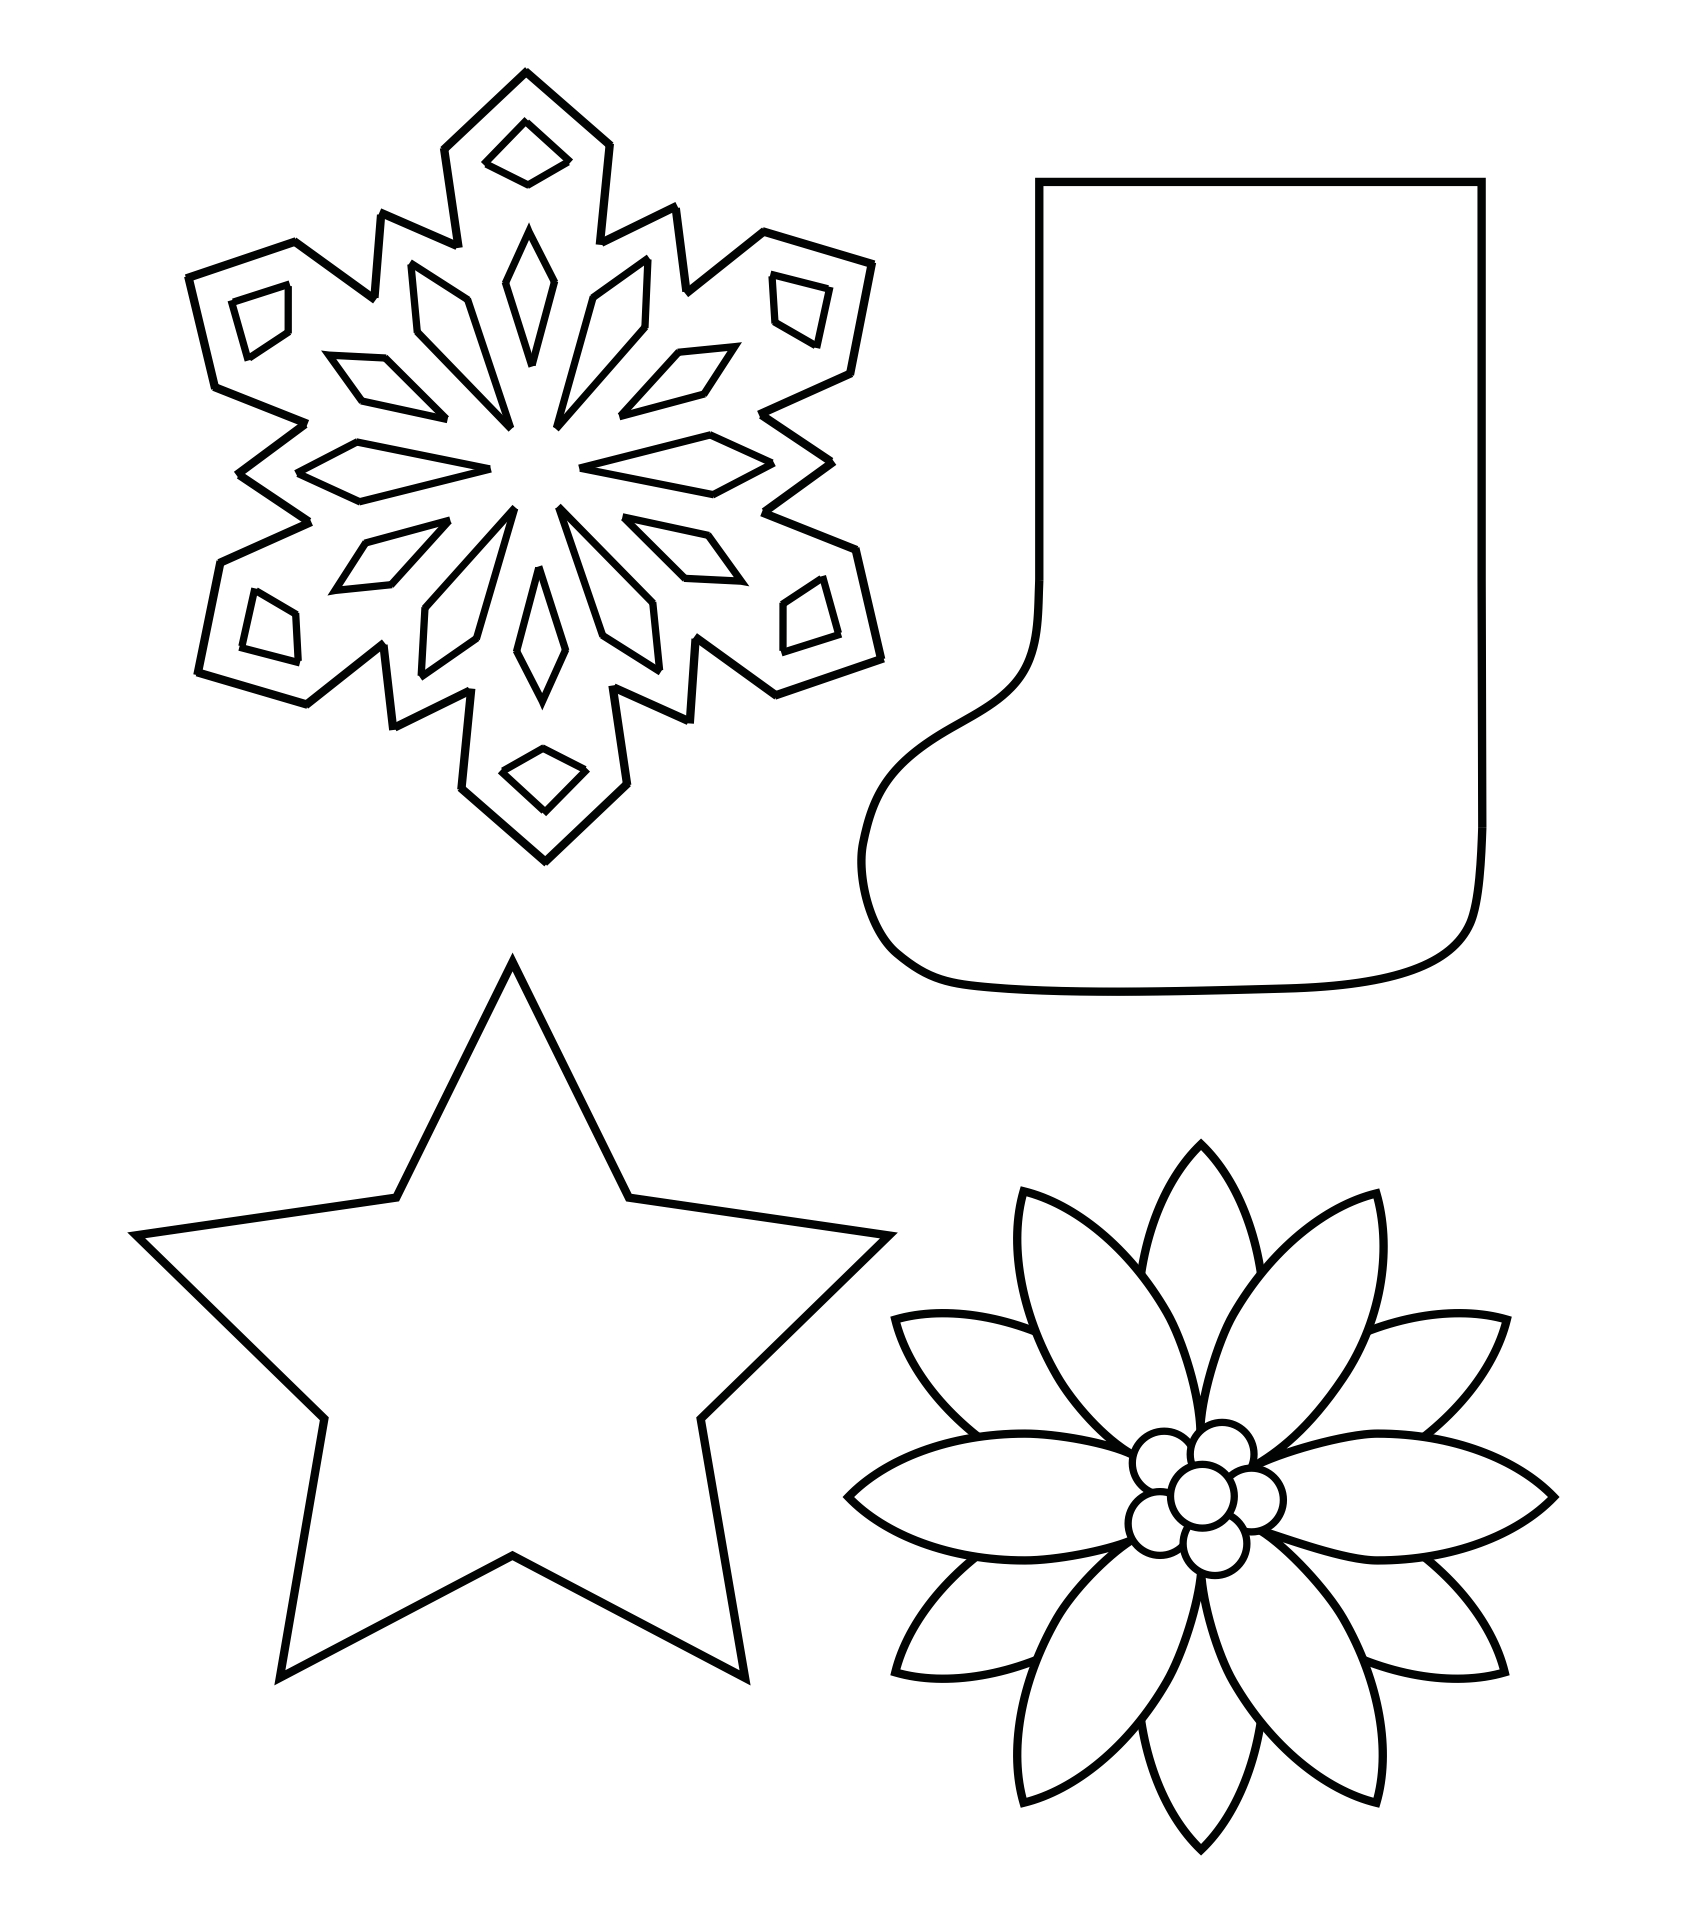 6 Images of Free Printable Christmas Shapes Template